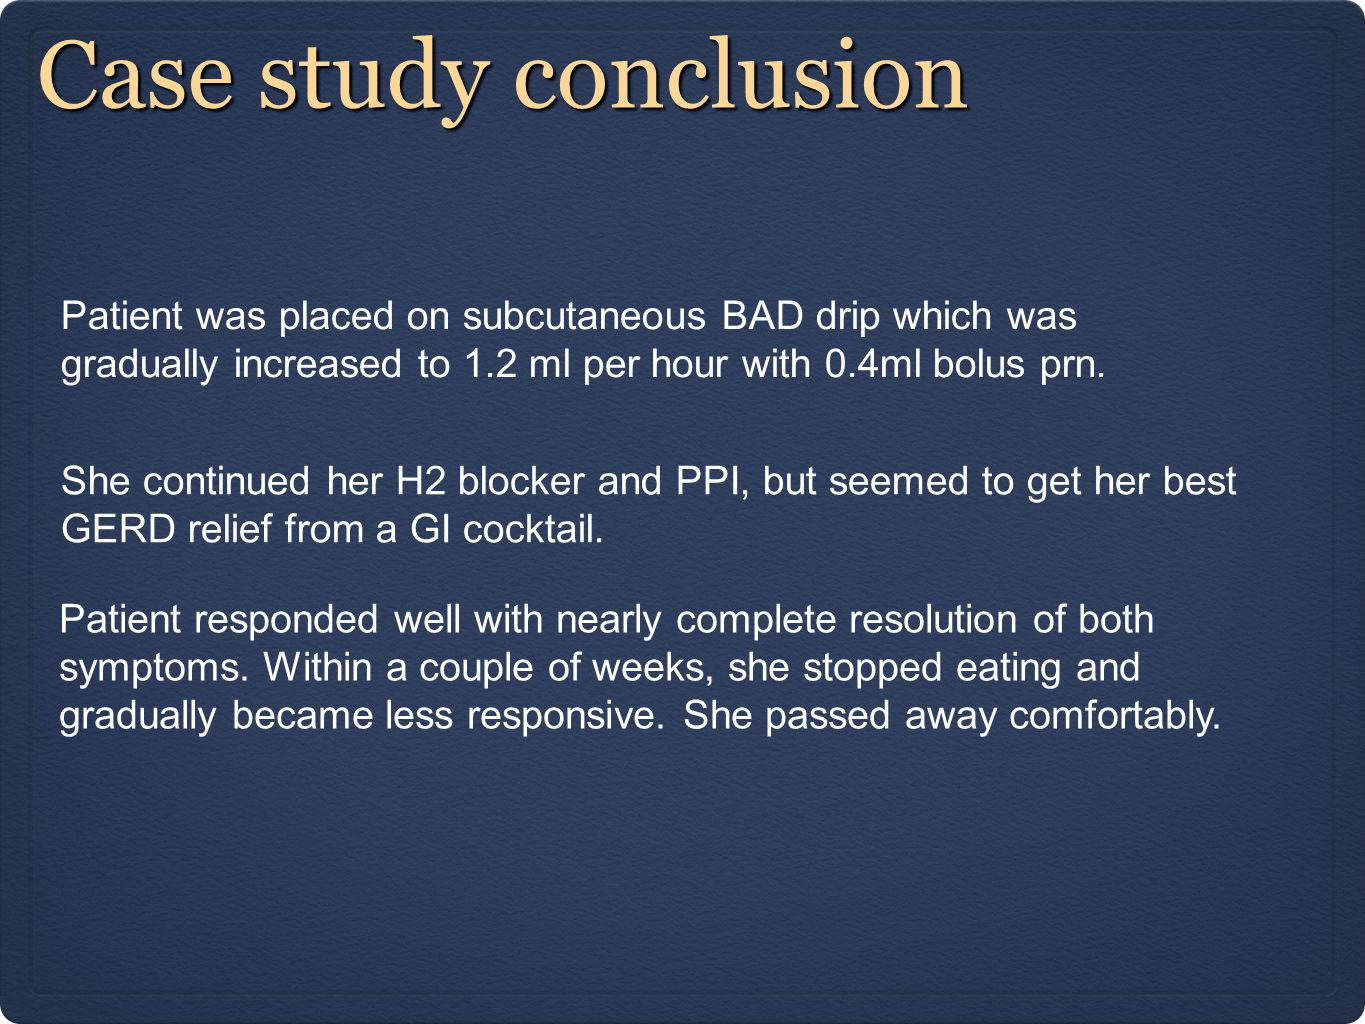 Case study conclusion Patient was placed on subcutaneous BAD drip which was gradually increased to 1.2 ml per hour with 0.4ml bolus prn. She continued